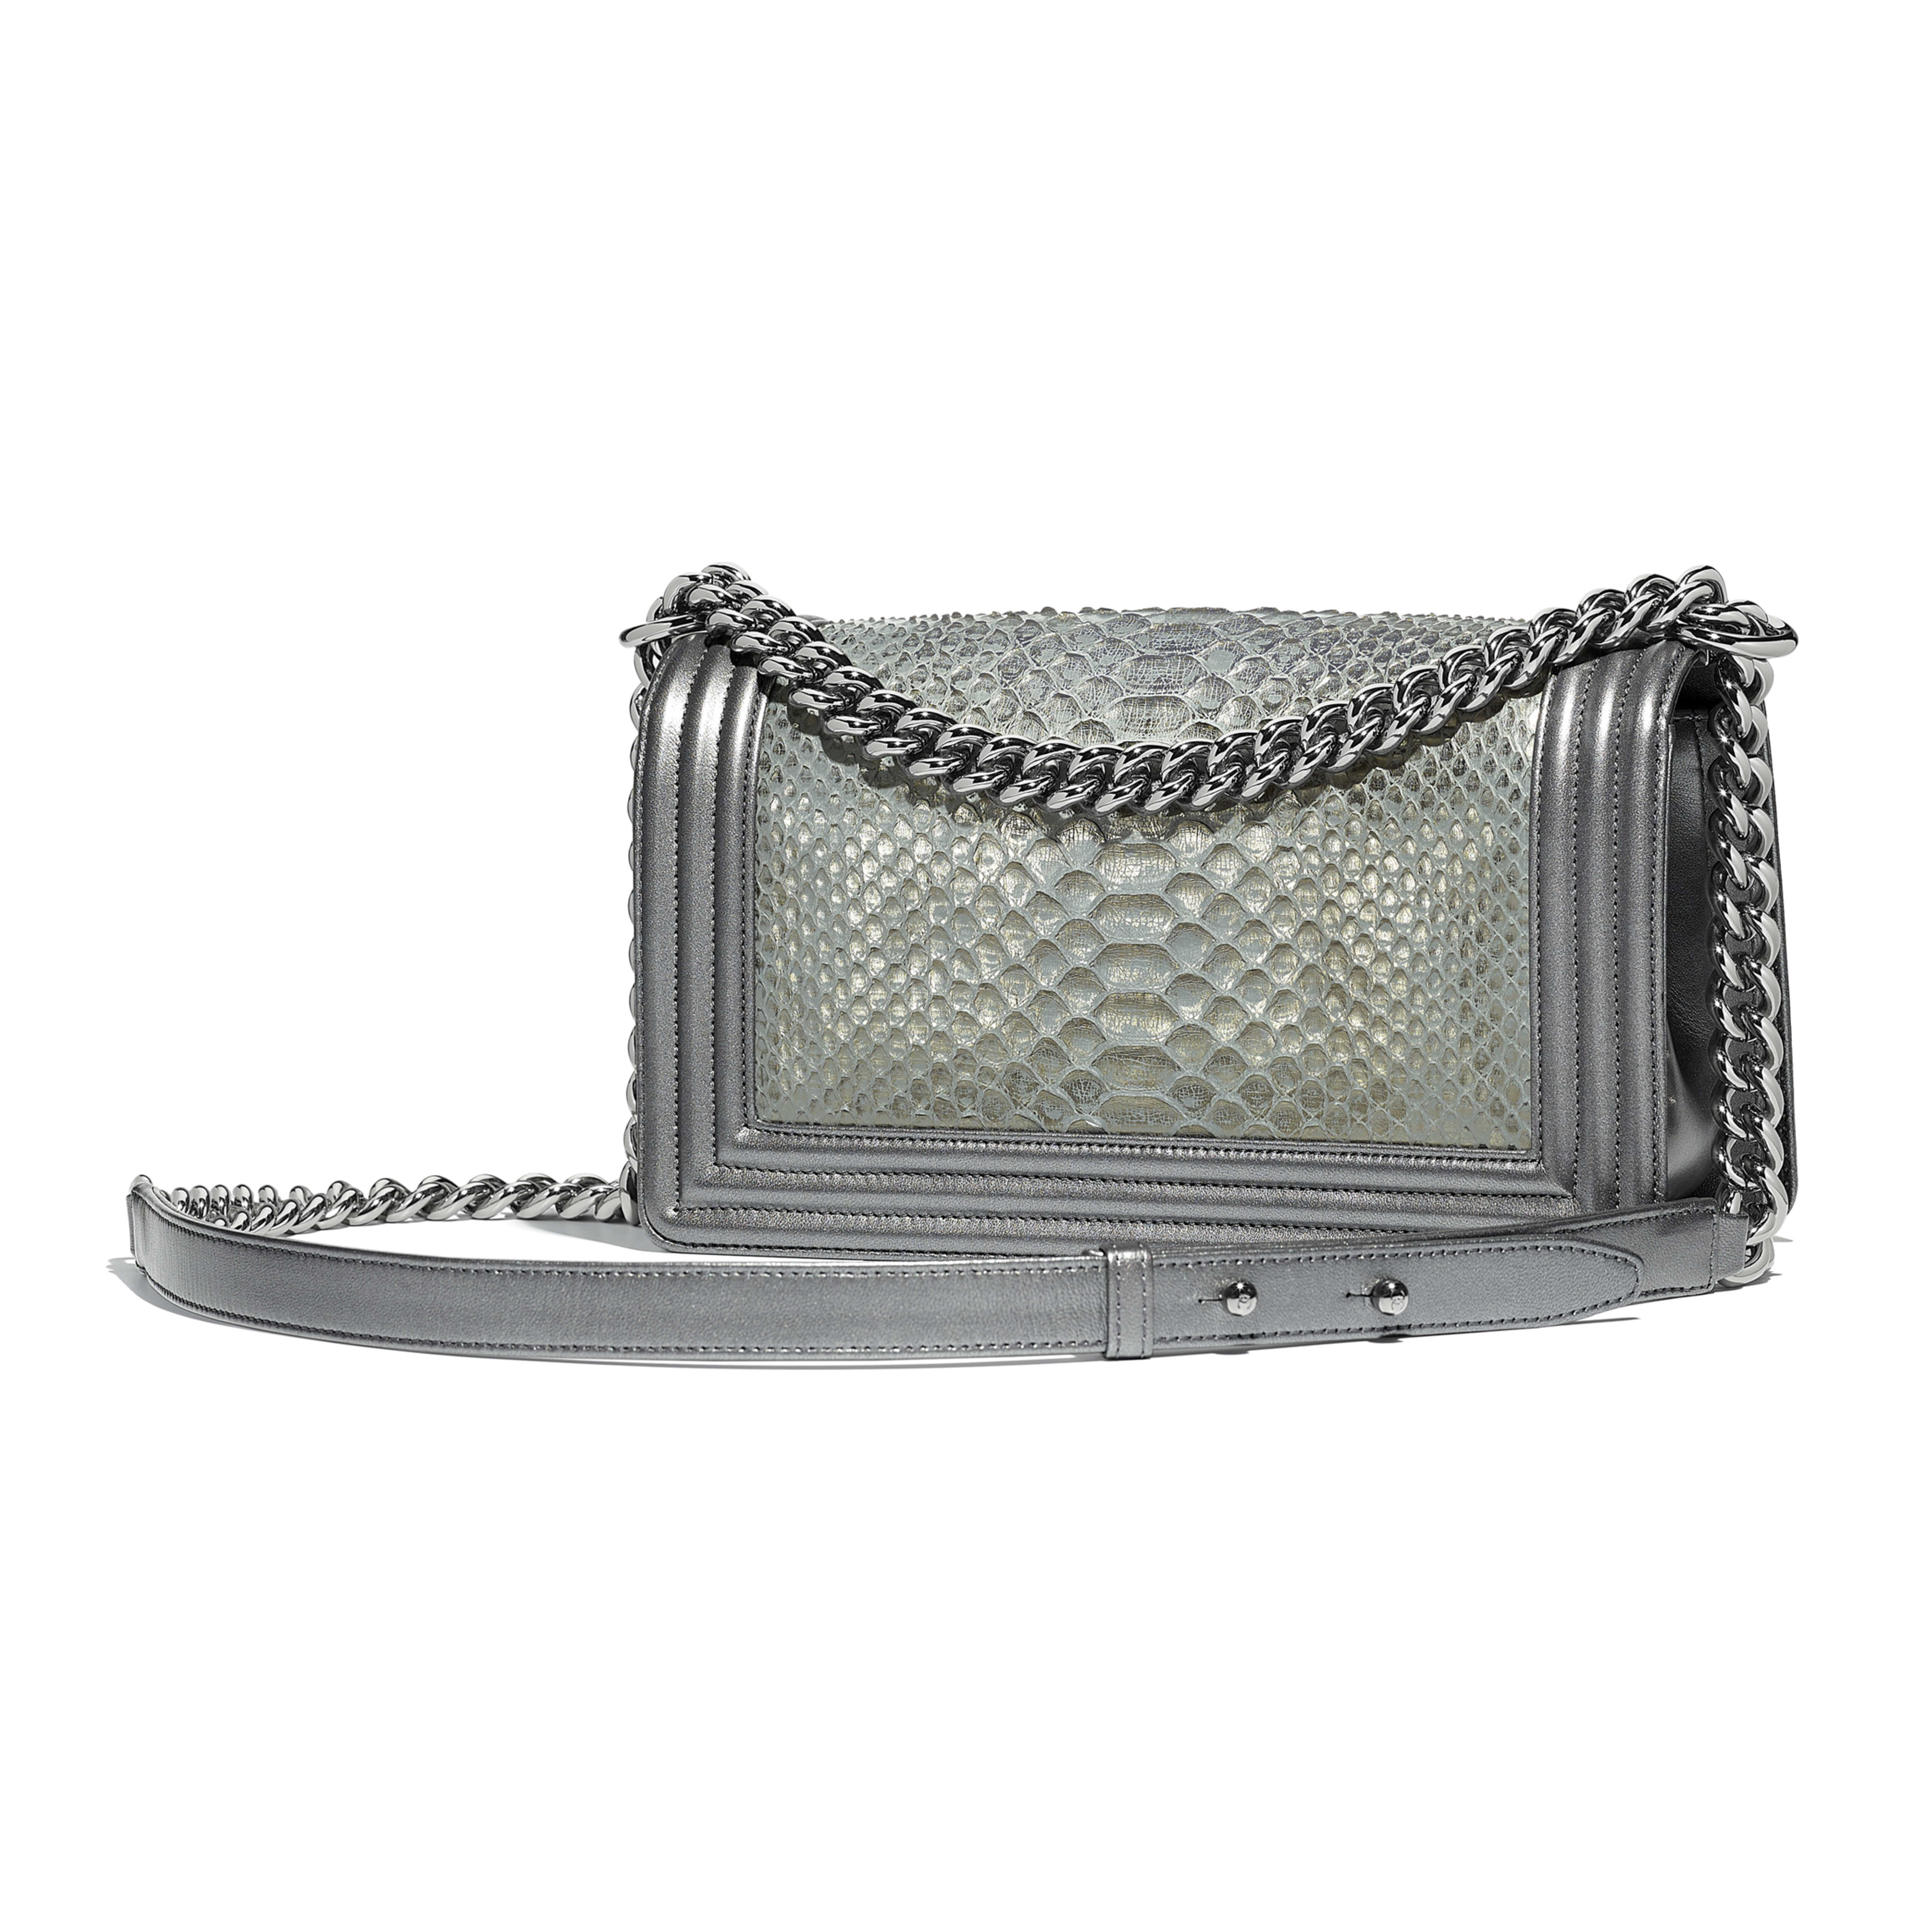 BOY CHANEL Handbag Python, Metallic Lambskin & Ruthenium-Finish Metal Silver -                                       view 2 - see full sized version